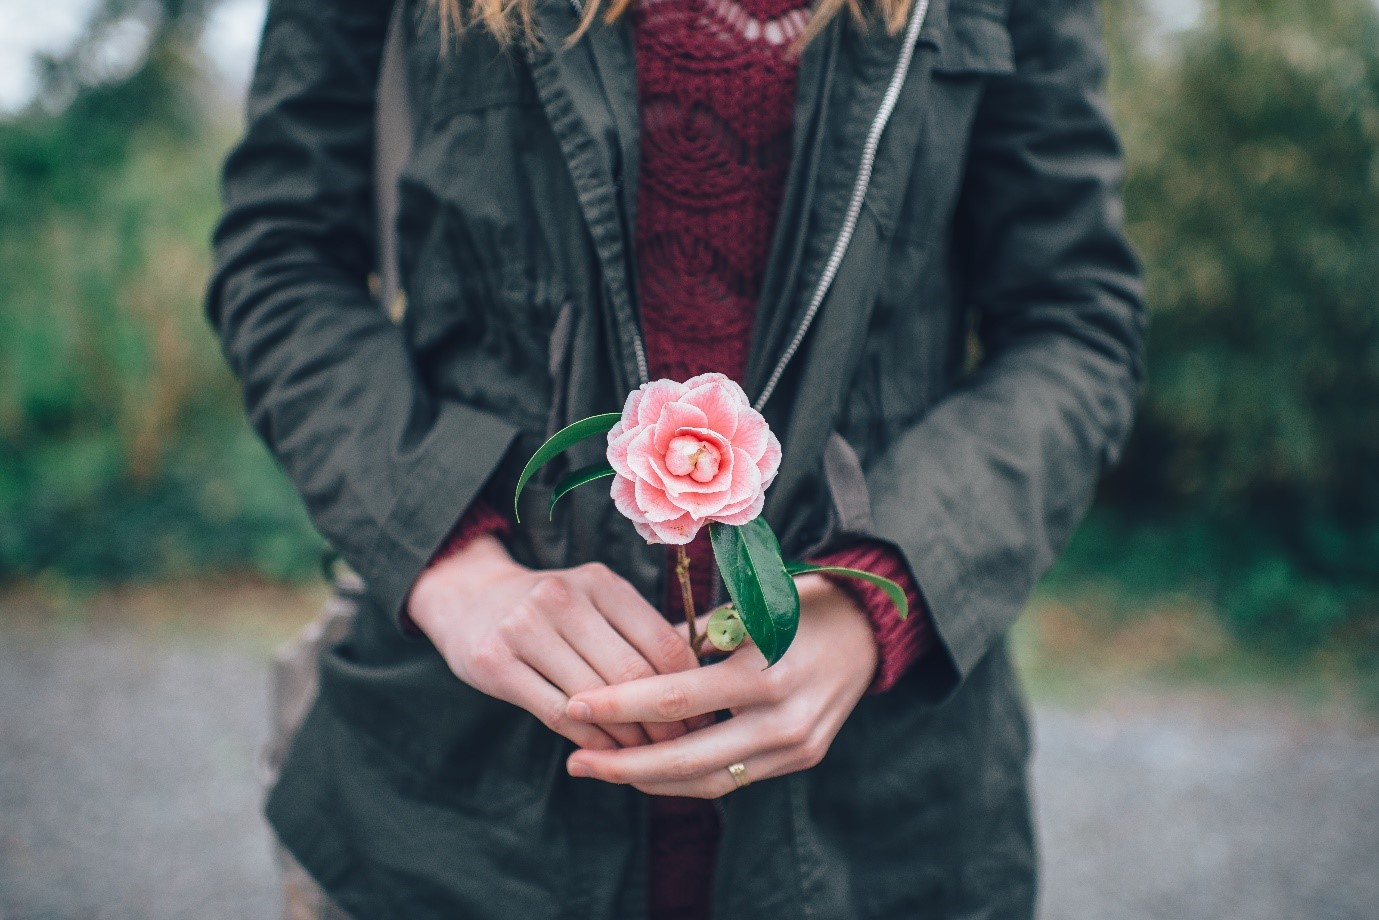 How to take good photos – woman holding flower as prop